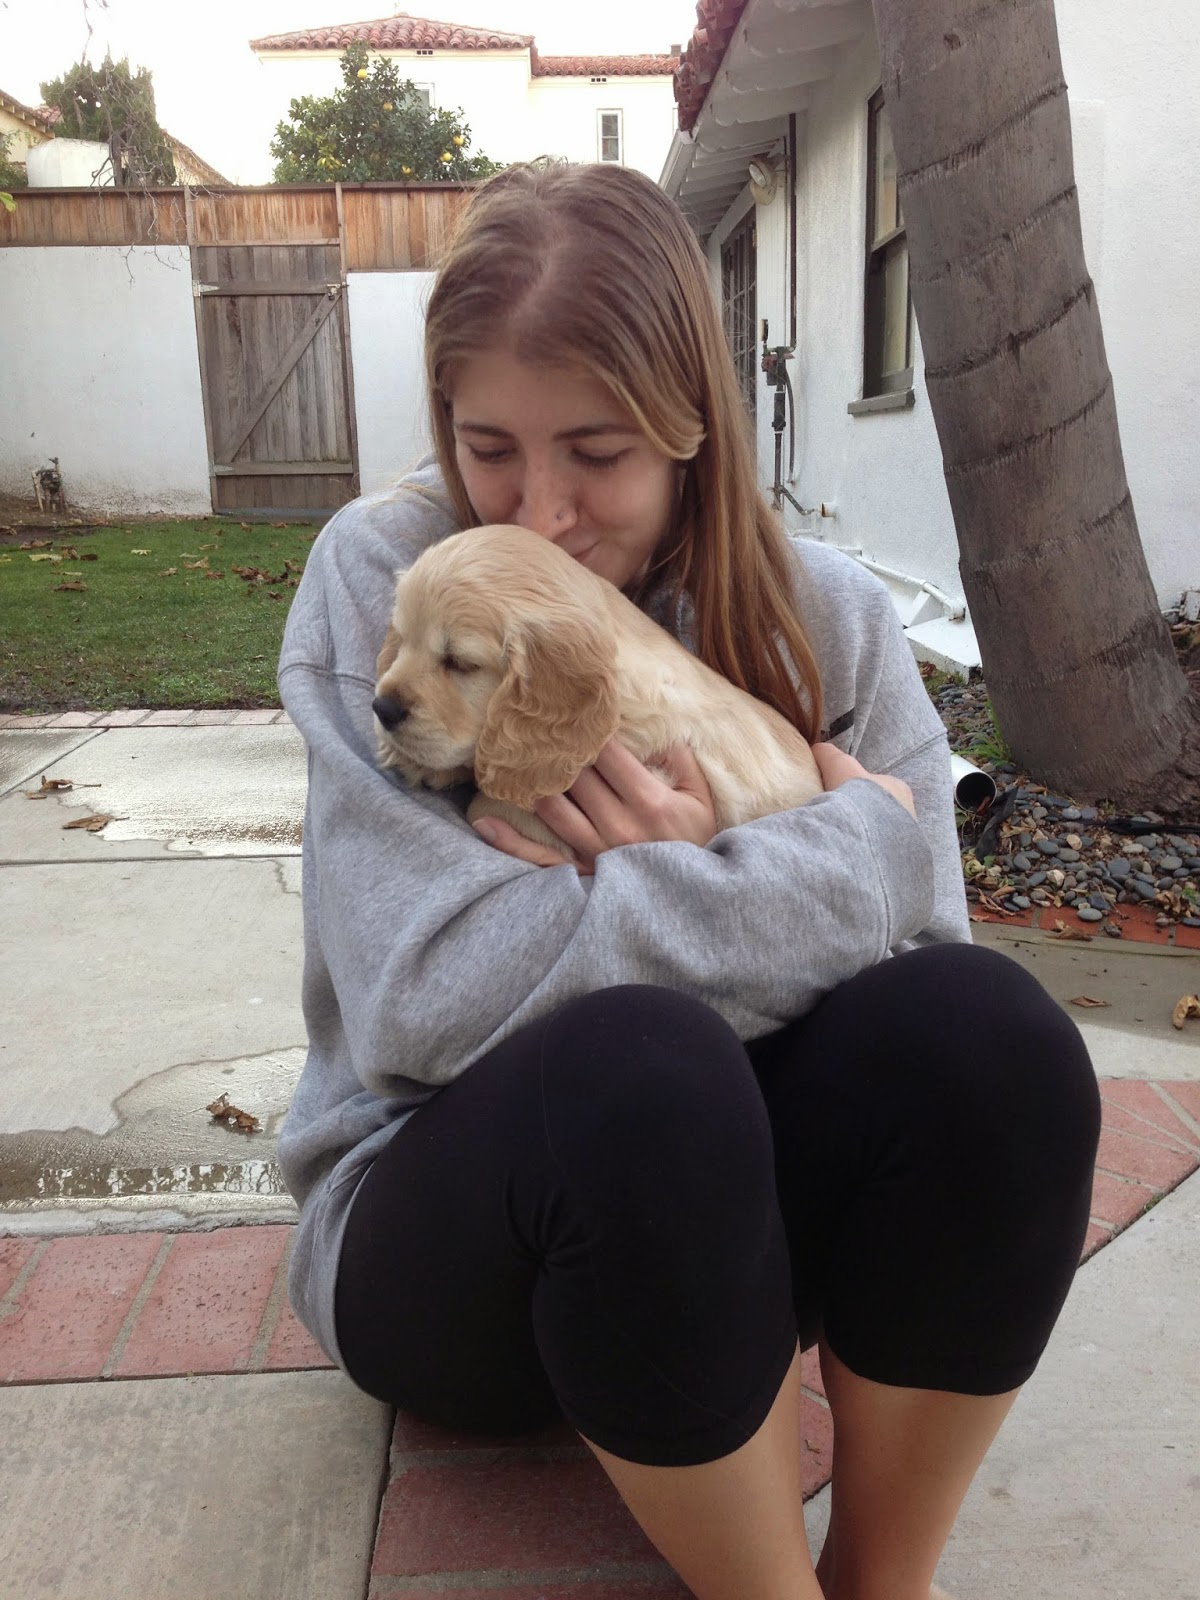 Duke was renamed Kona by his new owner, Mallory!